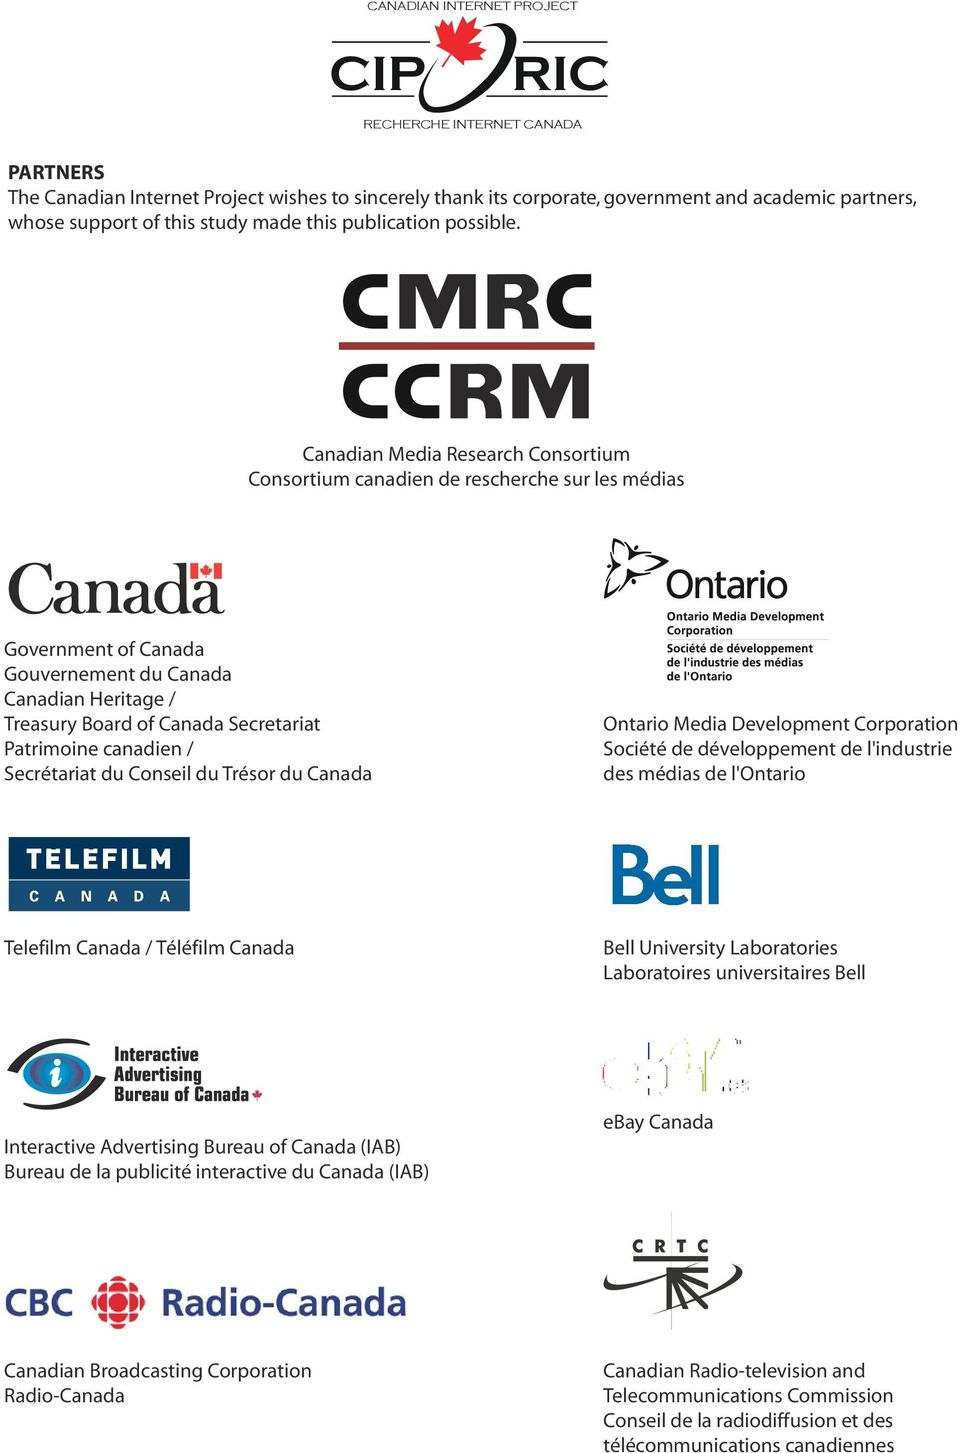 Canadian Media Research Consortium Consortium canadien de rescherche sur les médias Government of Canada Gouvernement du Canada Canadian Heritage / Treasury Board of Canada Secretariat Patrimoine